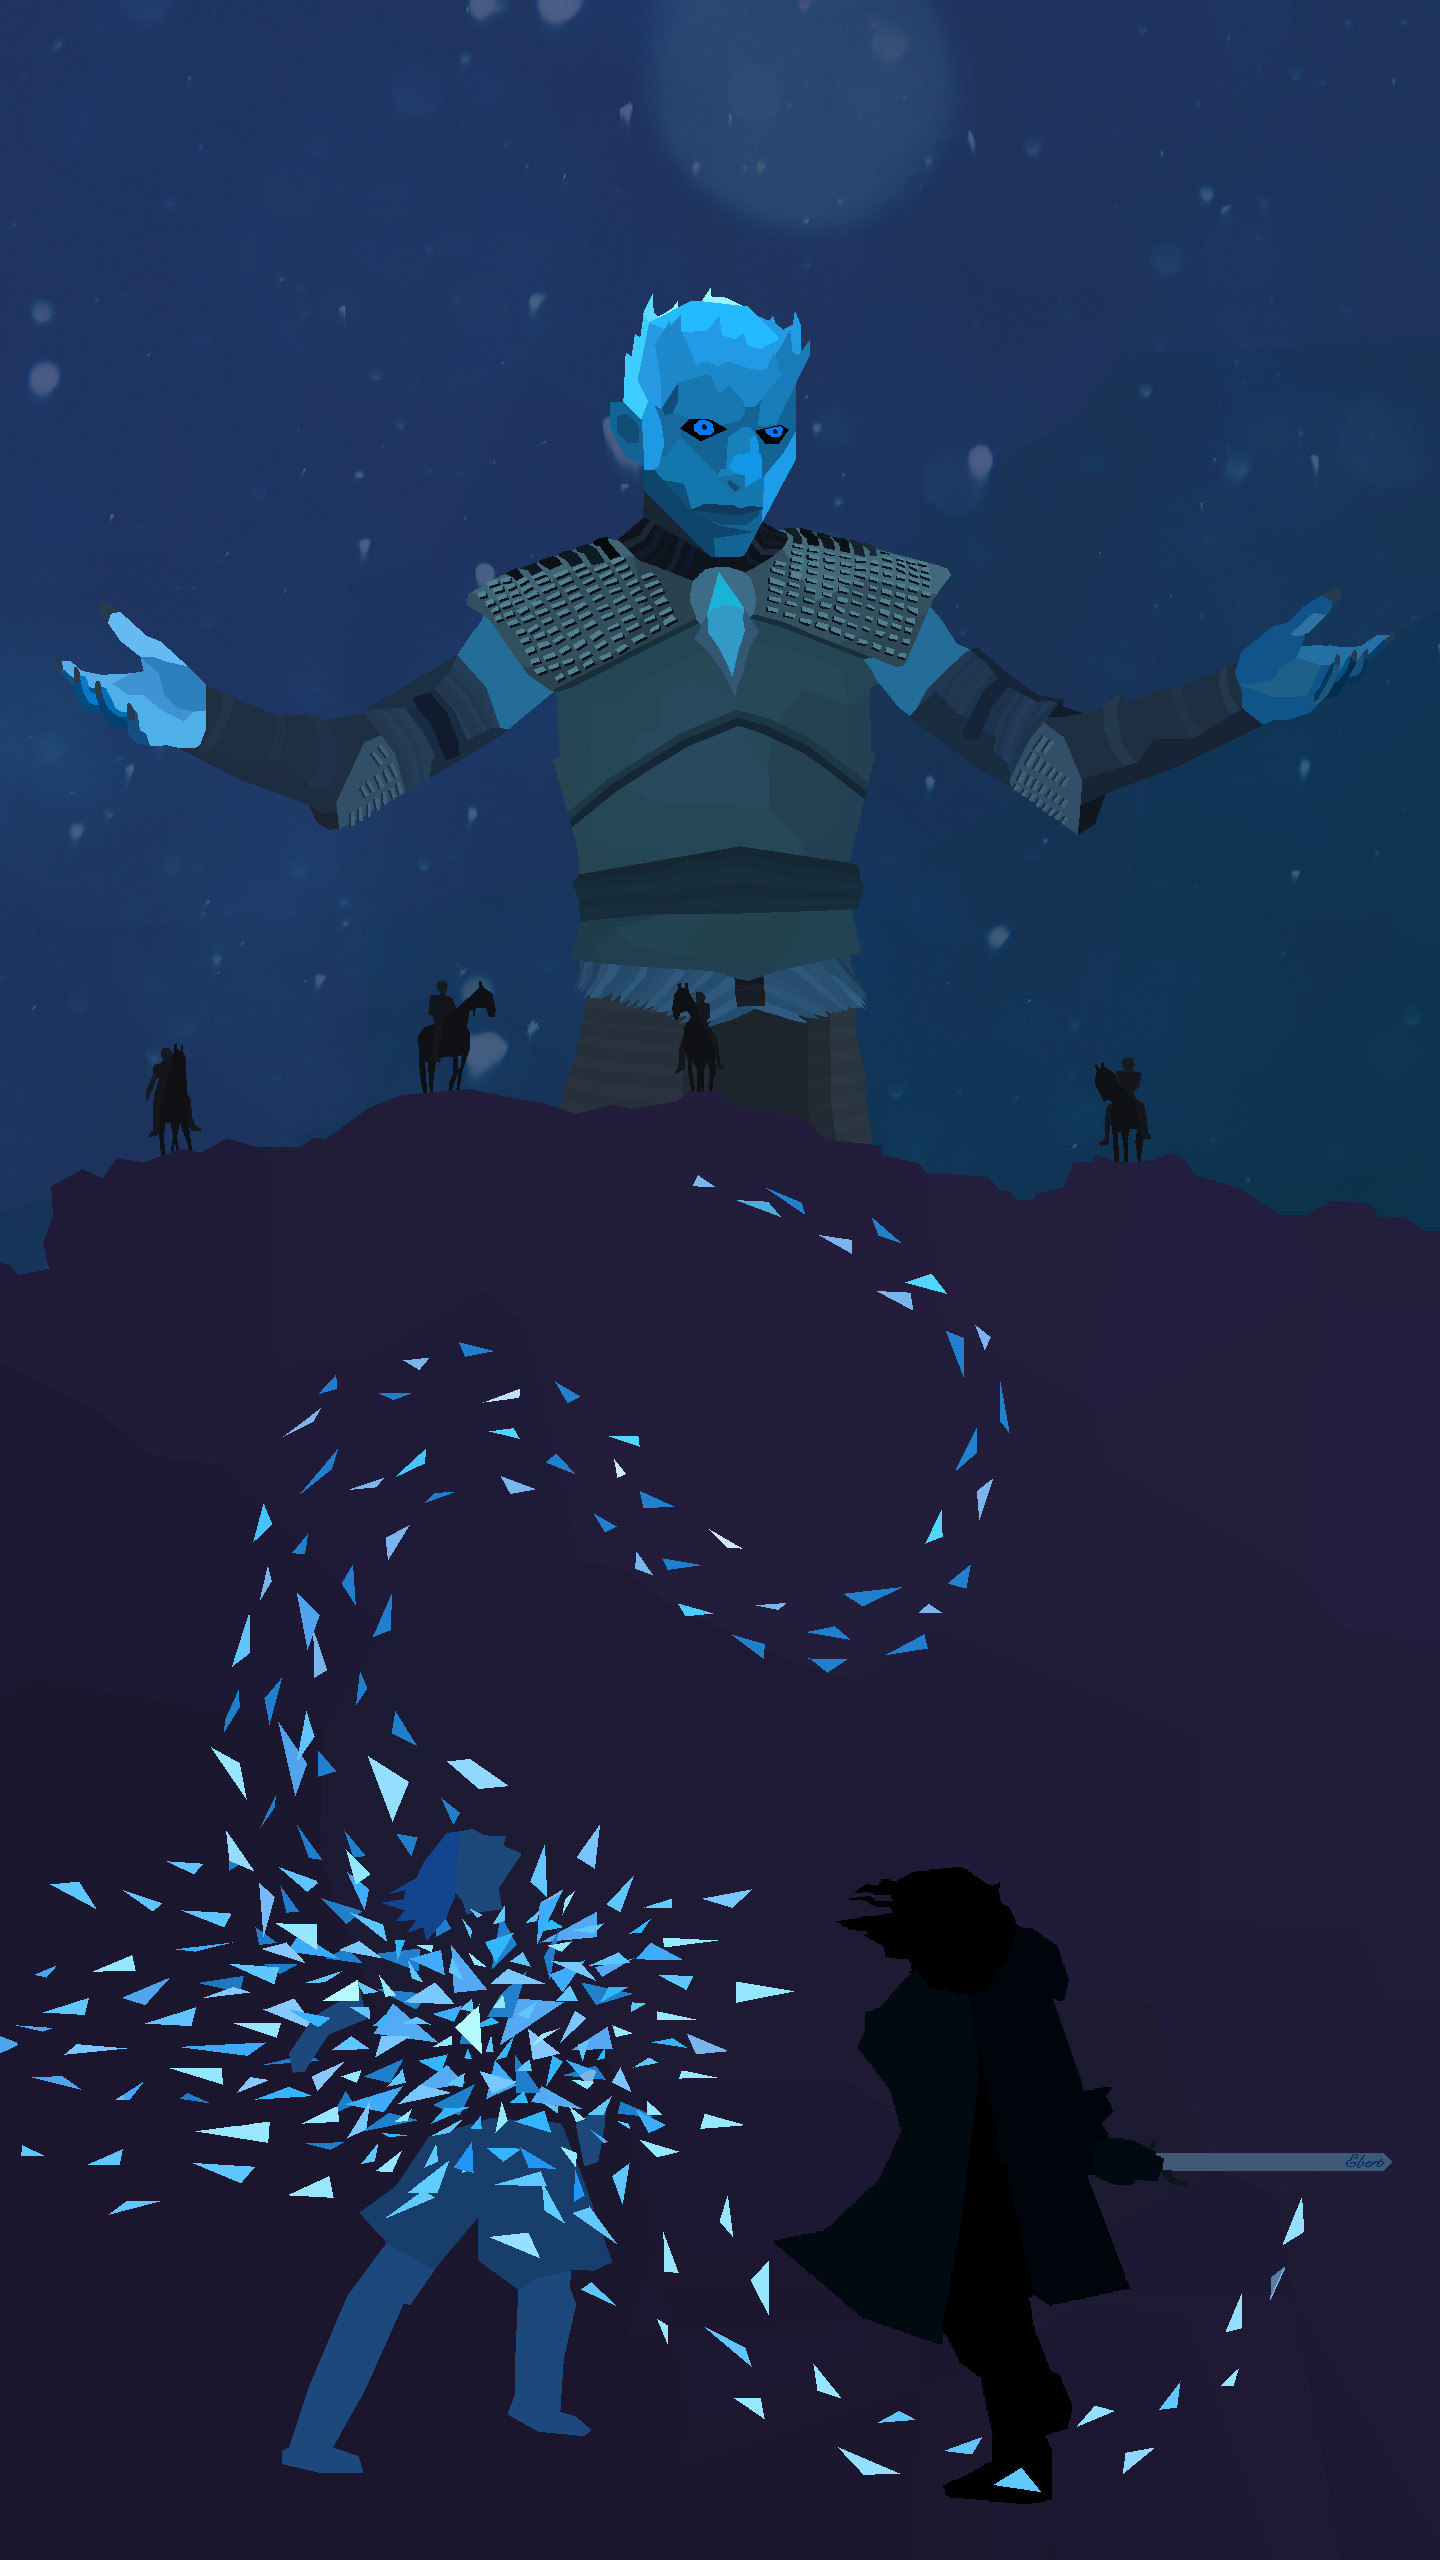 The night king wallpapers 86 images - King wallpaper ...